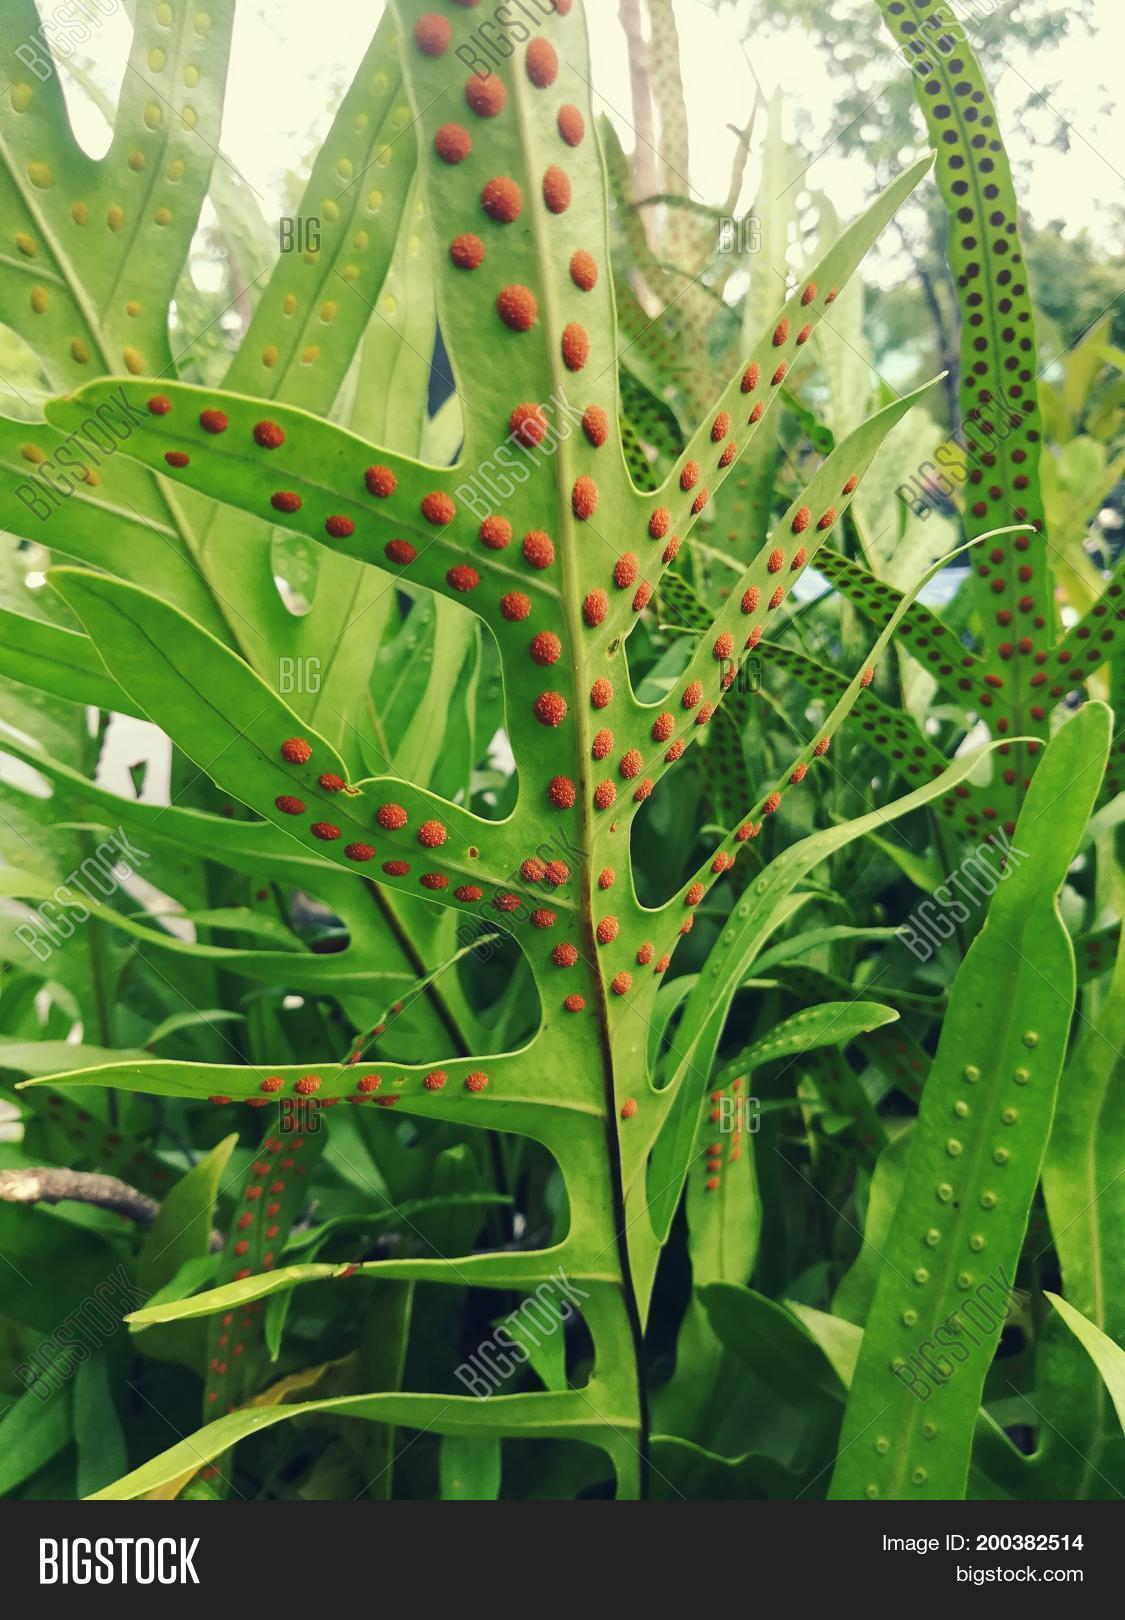 Are fern spores asexual